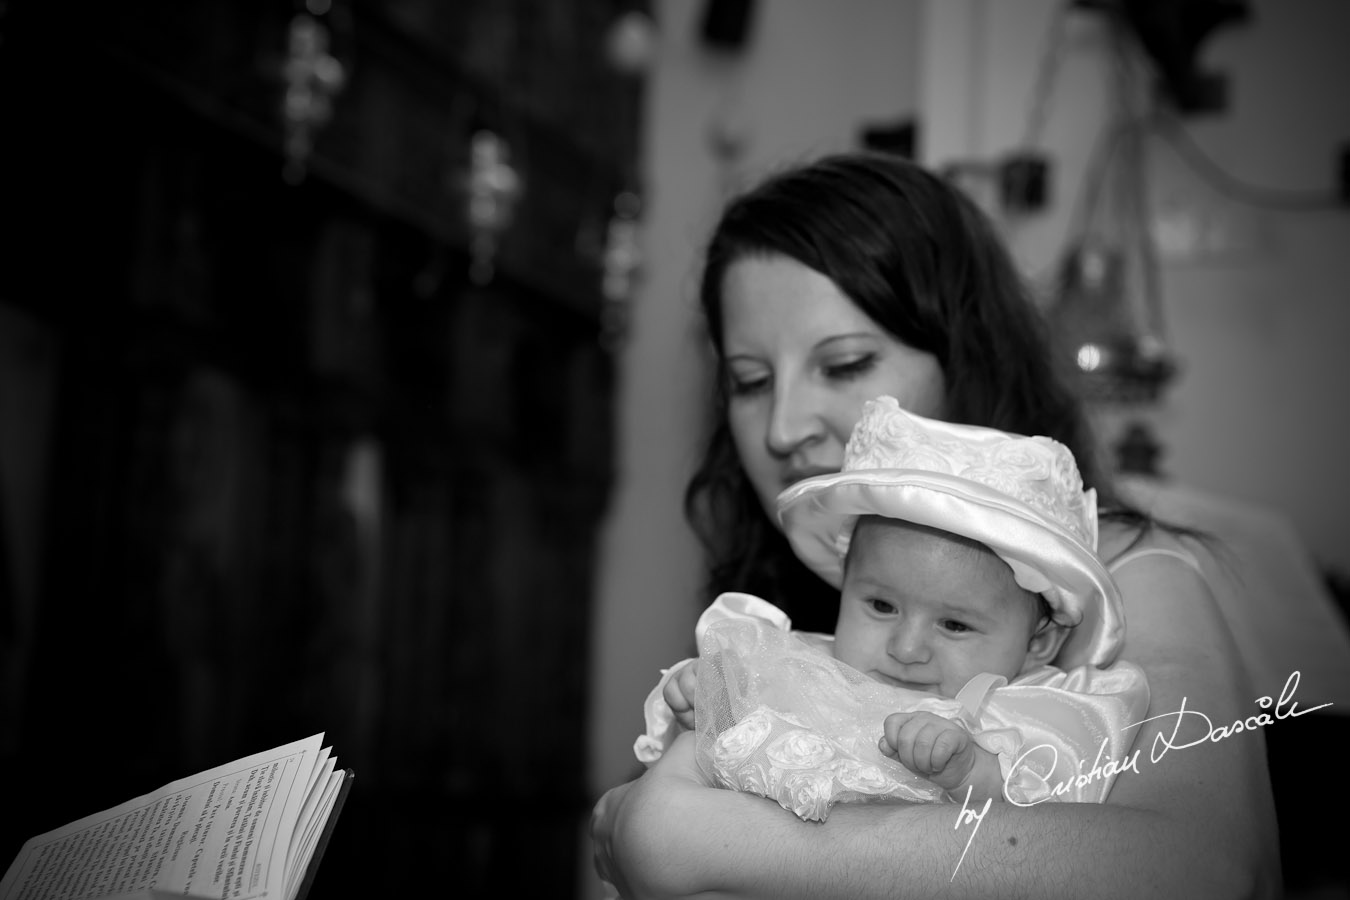 Diana's Christening - Cyprus Christening Photography. Photographer: Cristian Dascalu